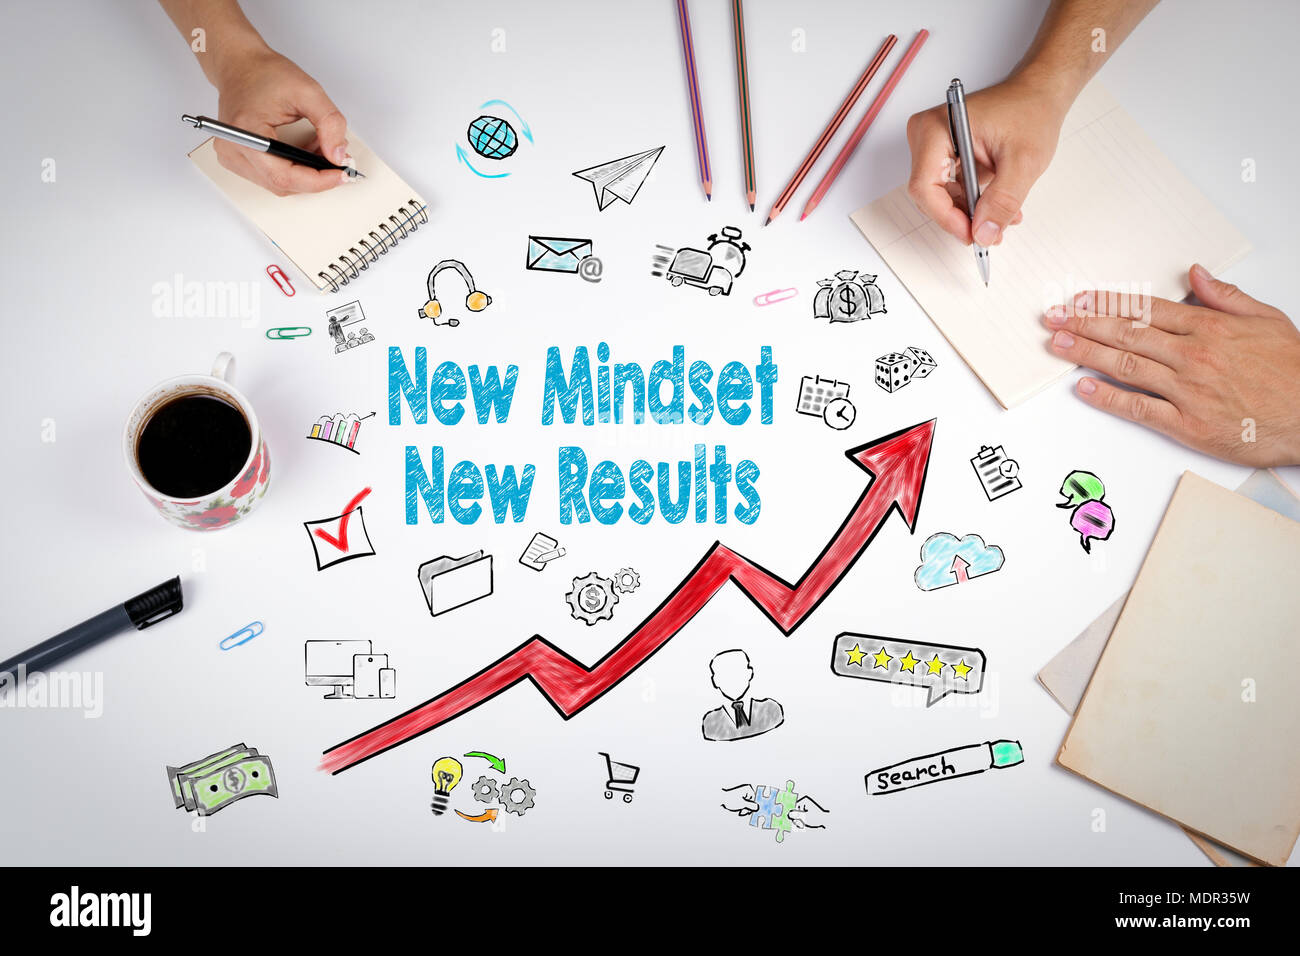 New Mindset New Results Concept. The meeting at the white office table - Stock Image